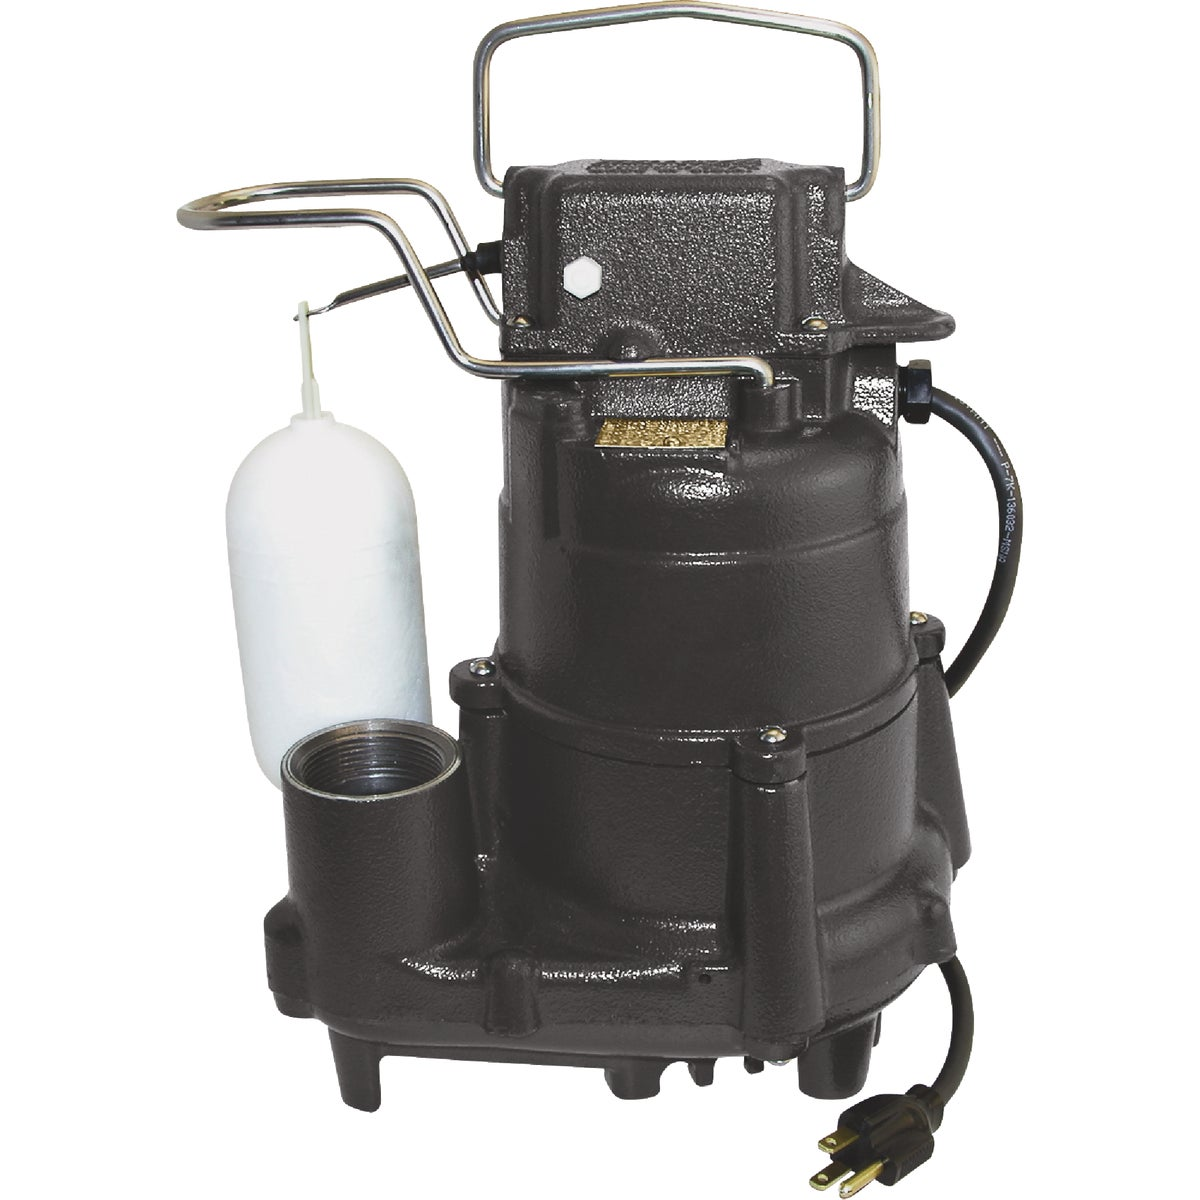 1/2HP CAST SUB SUMP PUMP - S1098 by Star Water Systems